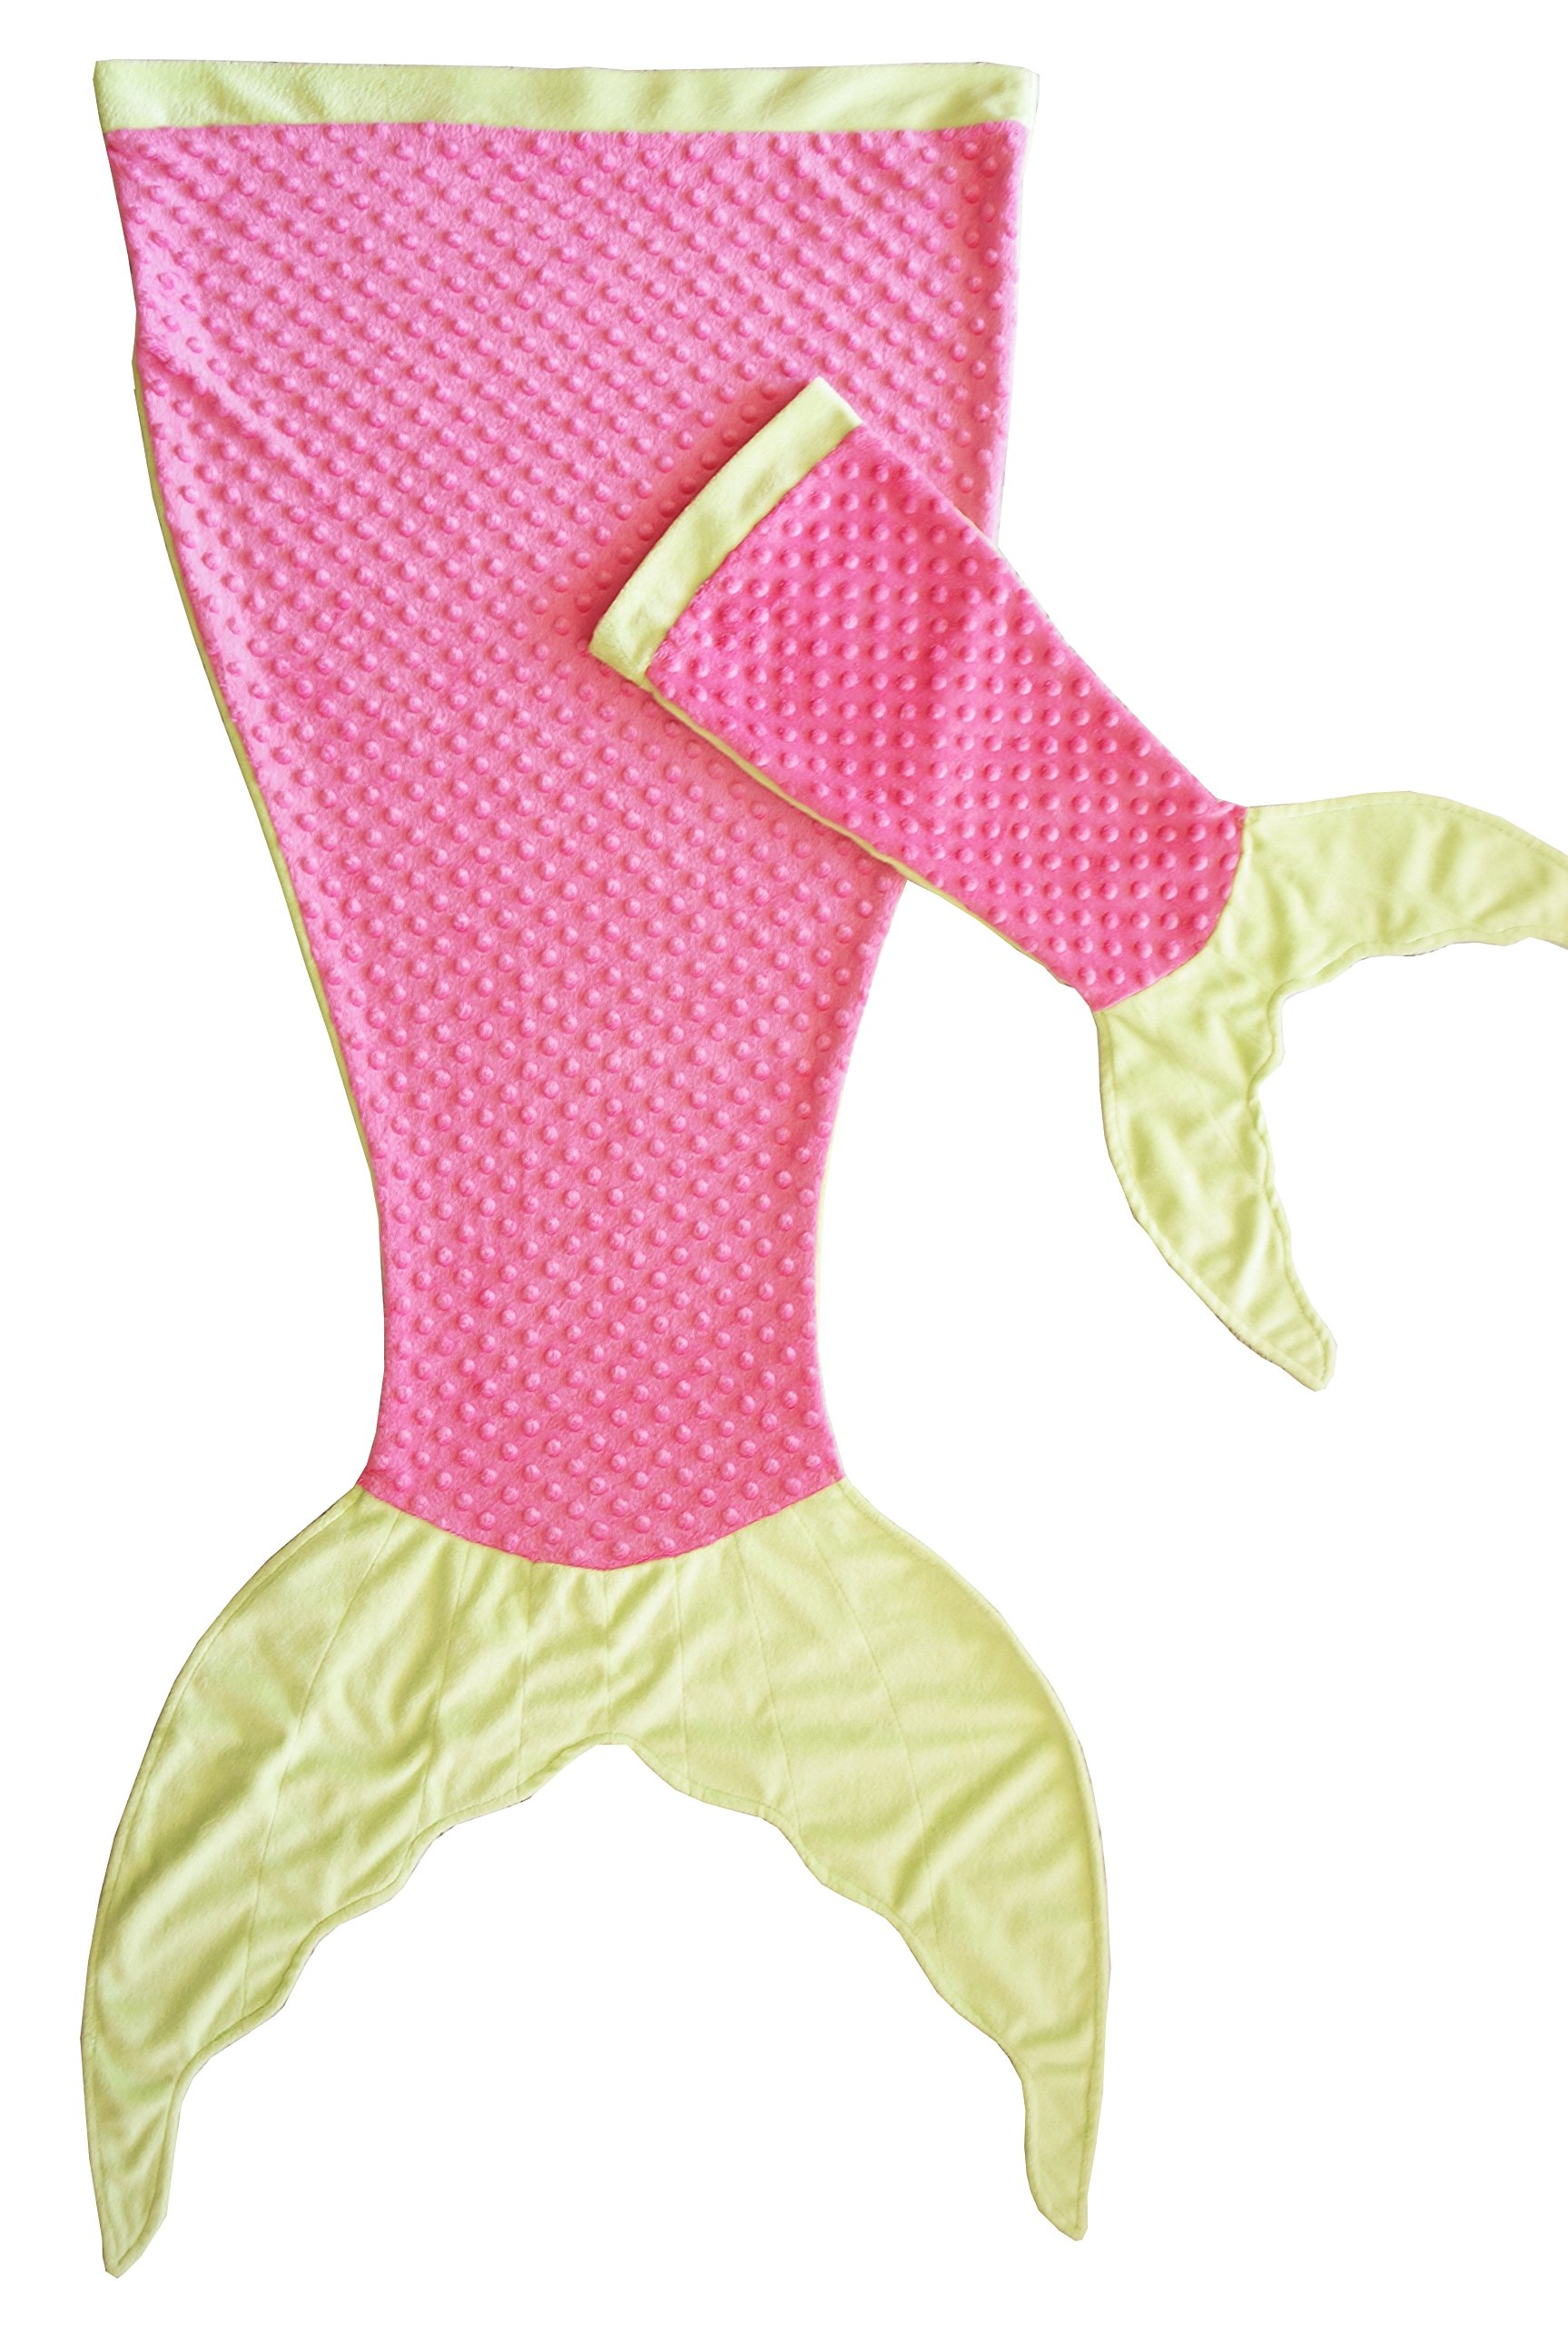 PoshPeanut Mermaid Blanket Softest Minky Comfy Cozy Blankie for Kids Ages 3-13 with FREE Toy Doll Blanket Included (Pink / Green)